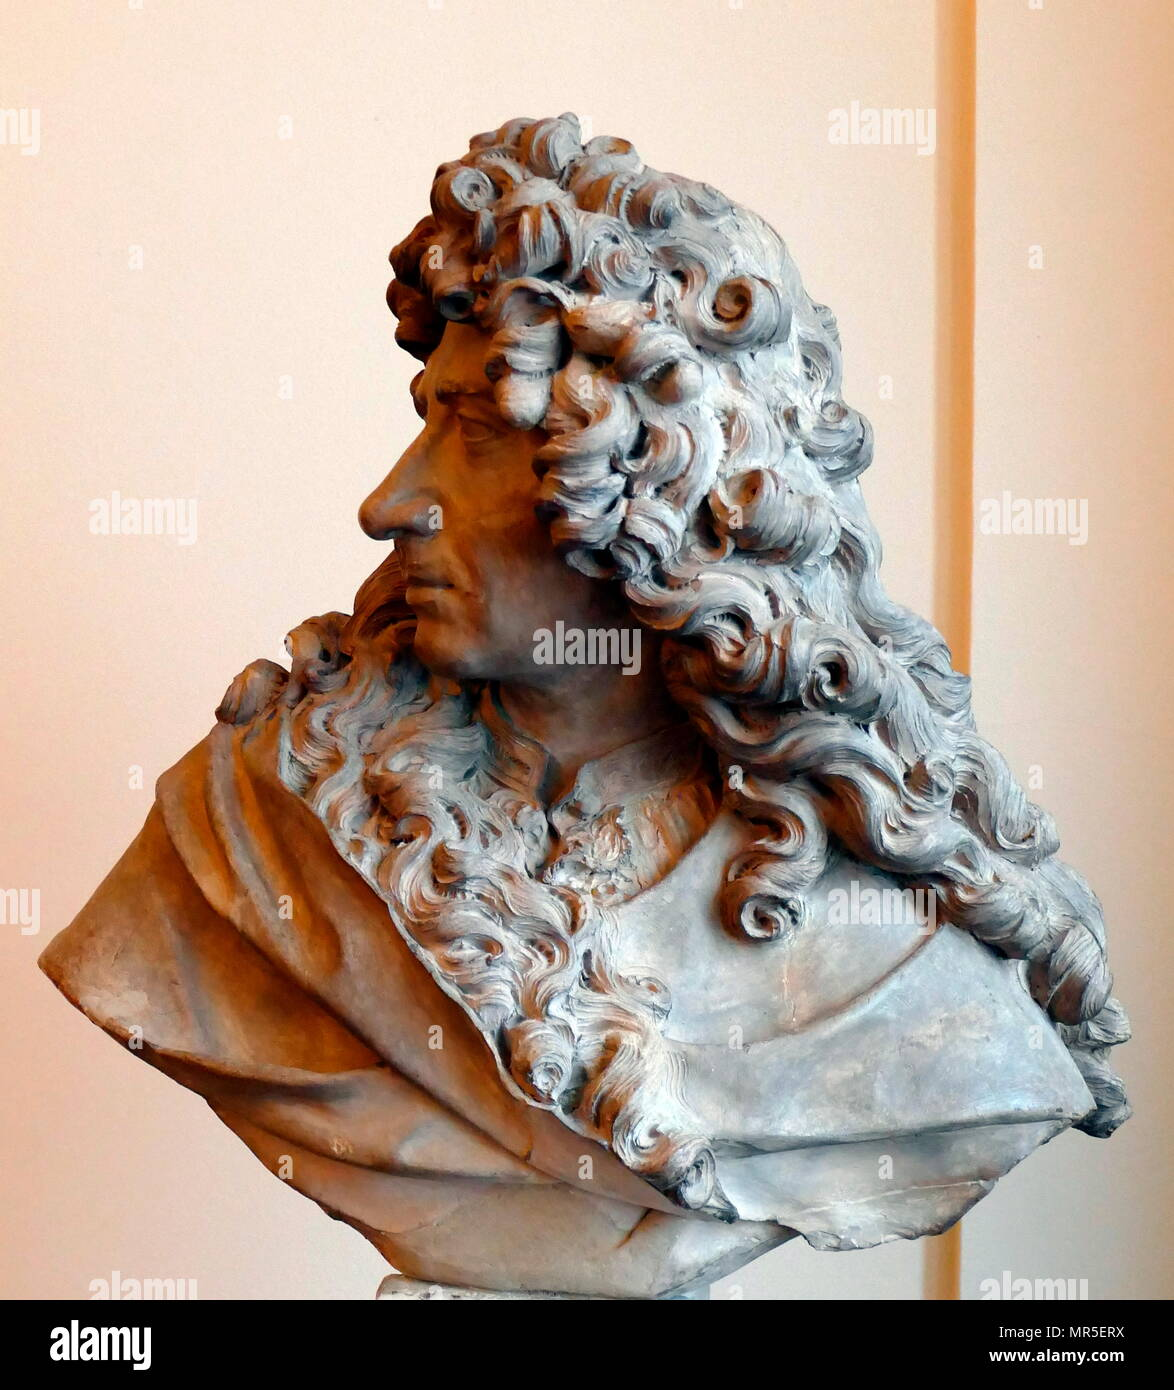 Portrait bust of Pierre Mignard, by Antoine Coysevox circa 1790. Pierre Mignard or Pierre Mignard I (17 November 1612 – 30 May 1695), called 'Mignard le Romain' to distinguish him from his brother Nicolas Mignard, was a French painter known for his religious and mythological scenes and portraits - Stock Image